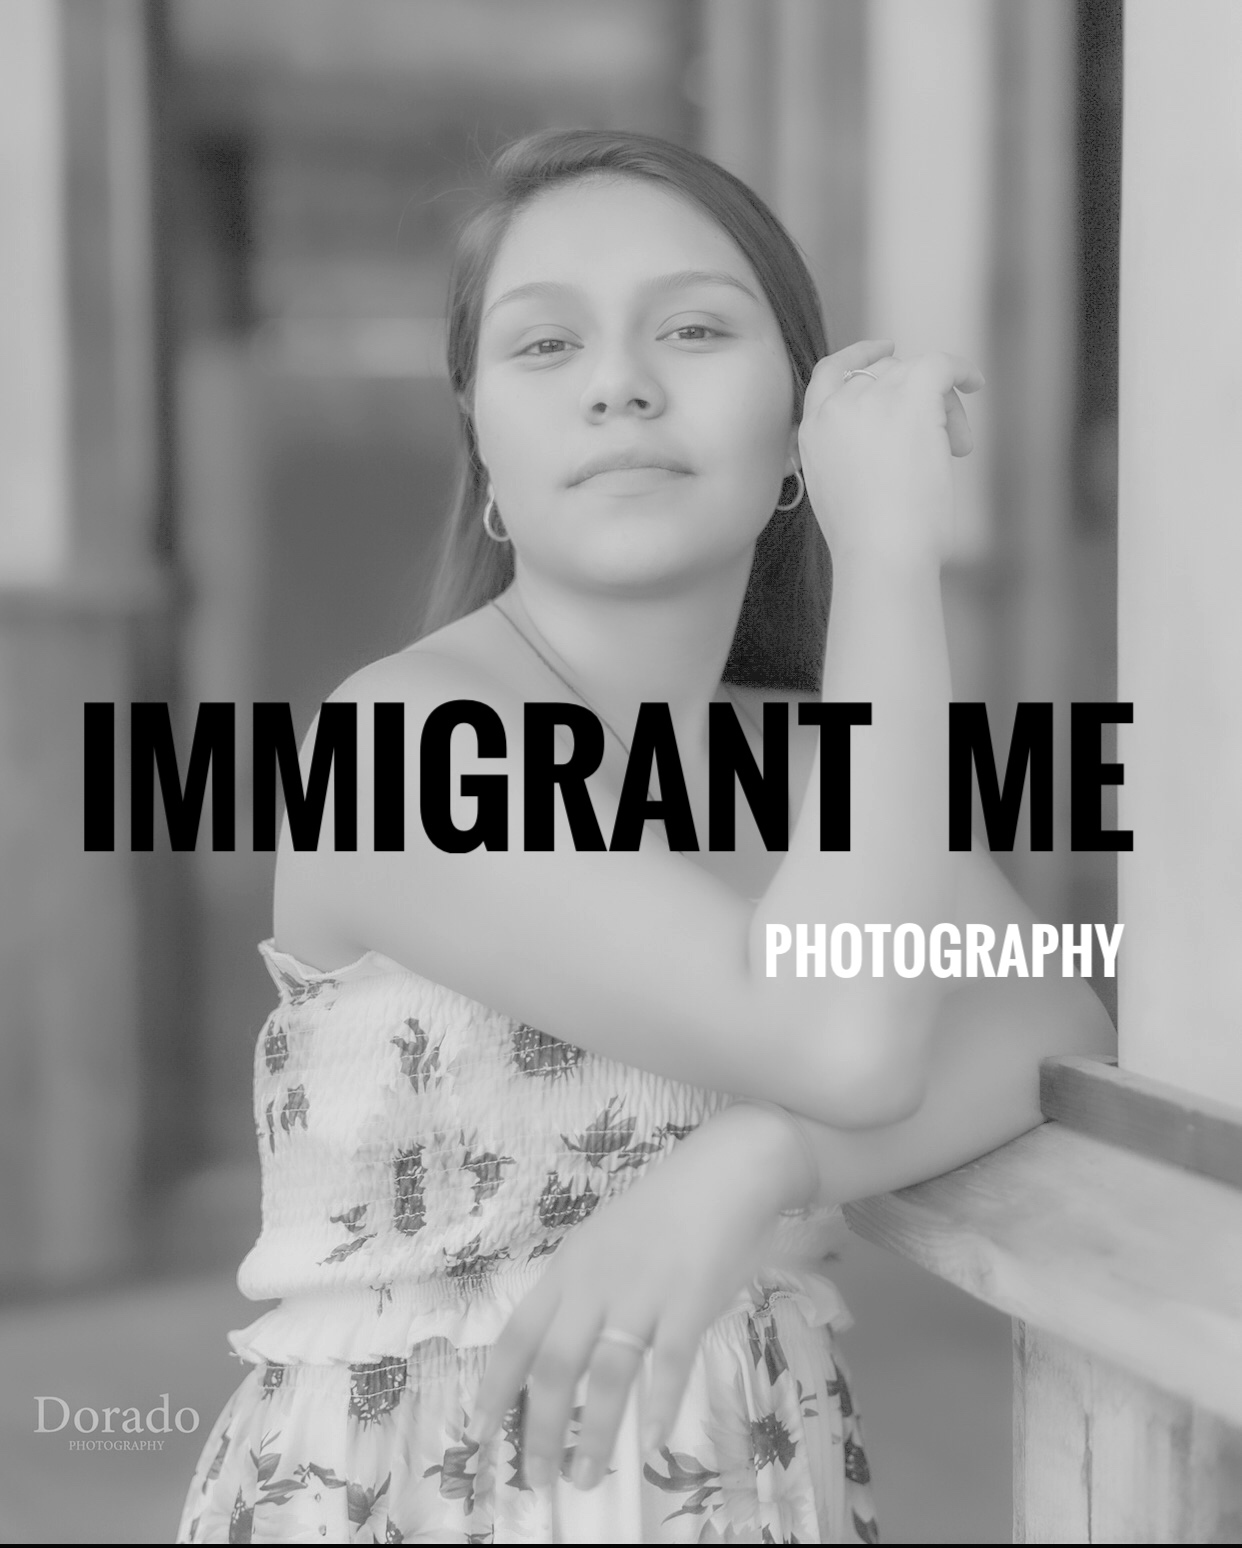 A photo of a woman posed and glancing off in the distance from the immigrant me exhibit